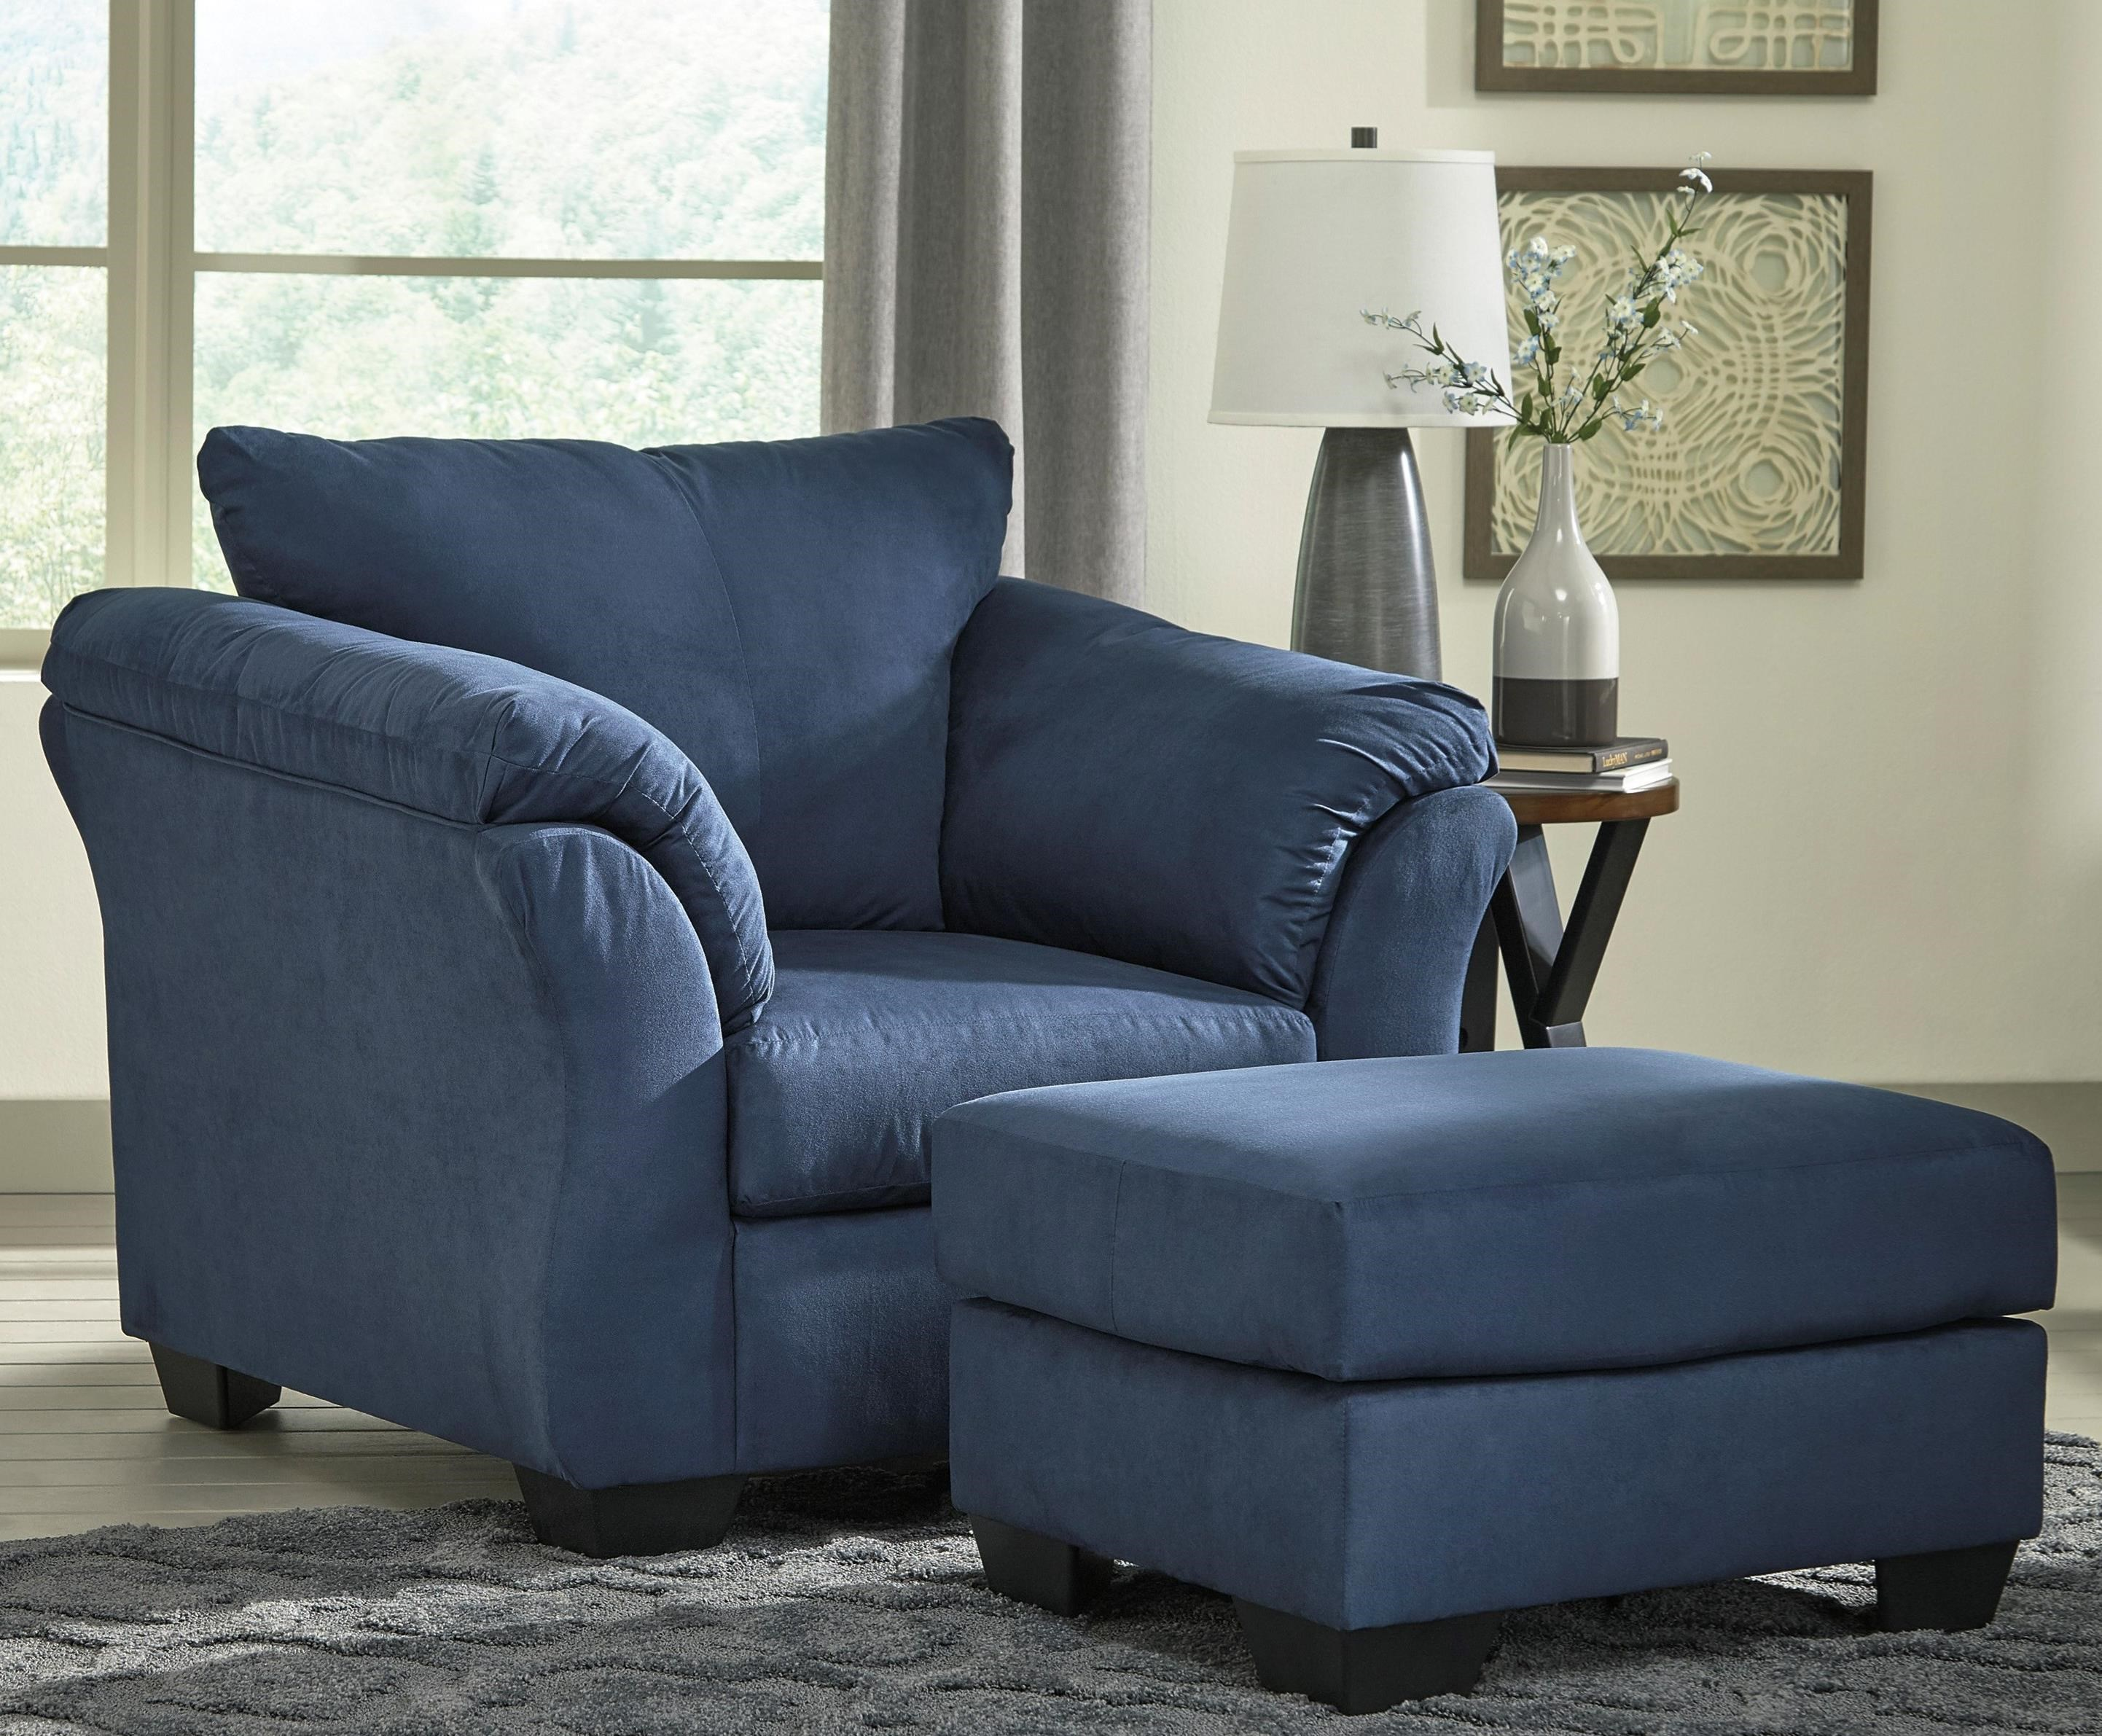 Darcy - Blue Upholstered Chair and Ottoman by Signature Design by Ashley at Furniture Barn